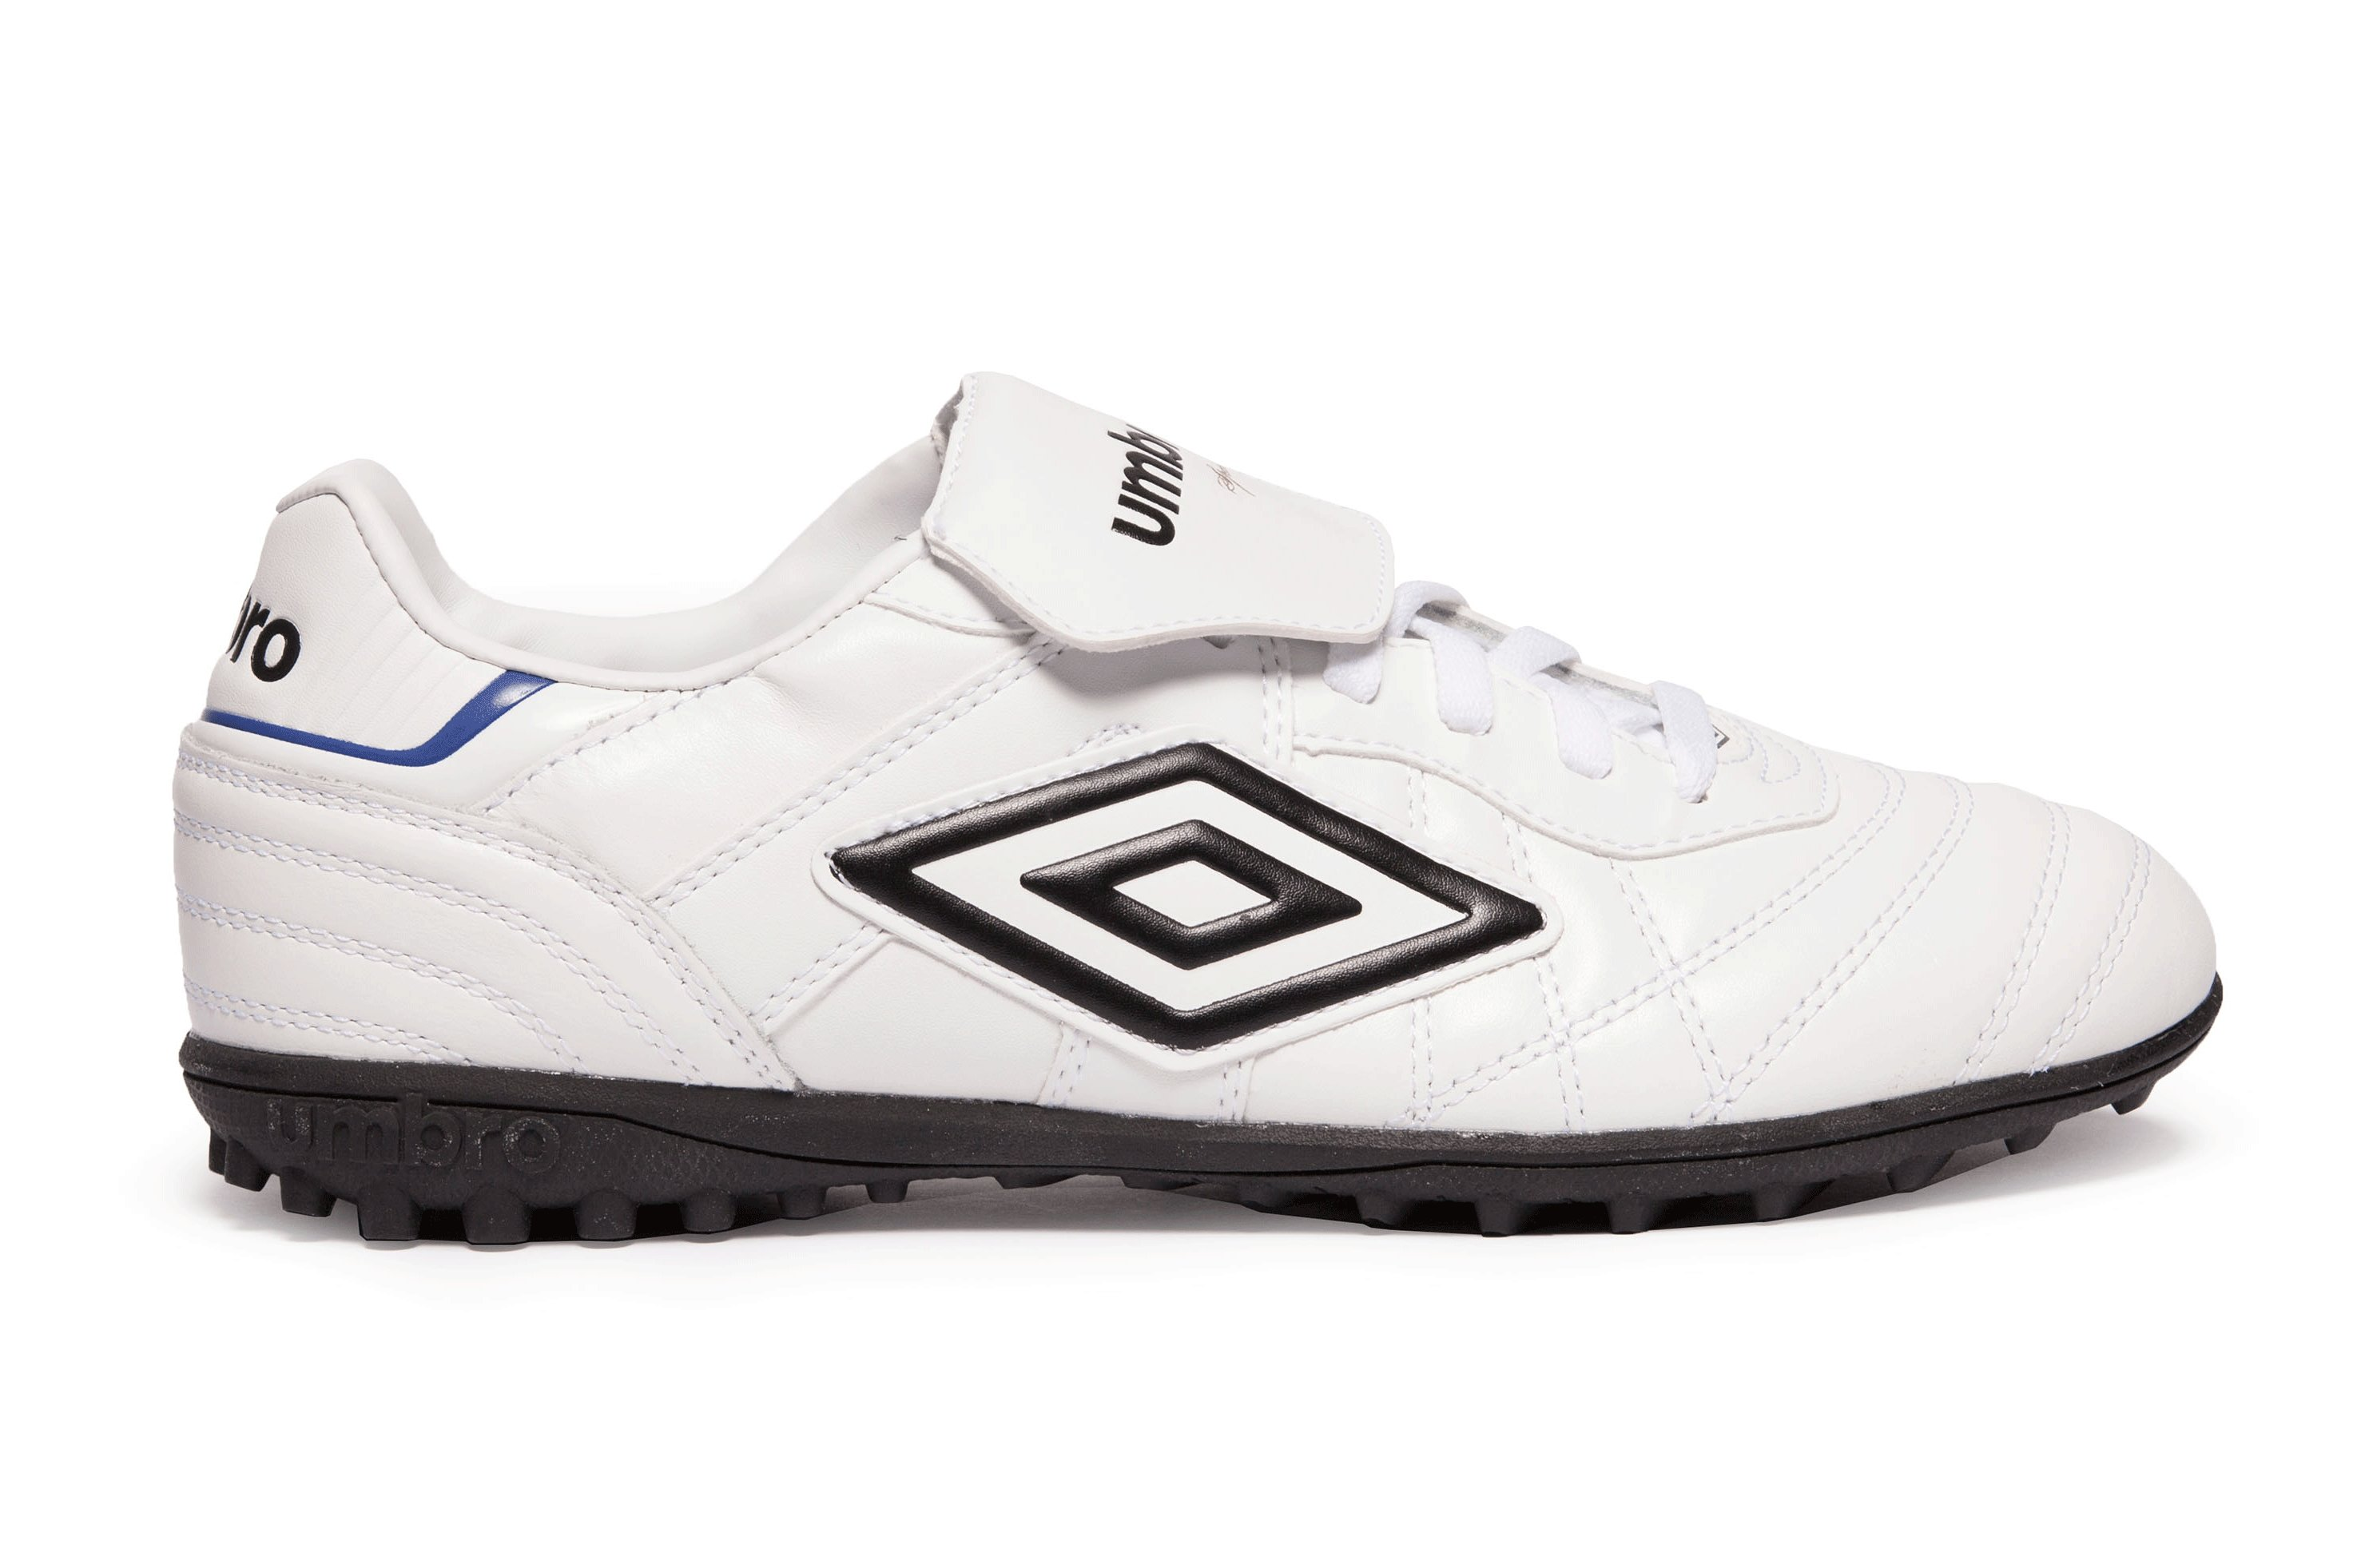 65166caa013 View the SPECIALI ETERNAL PREMIER - ASTRO TURF TRAINERS from the Menswear  collection